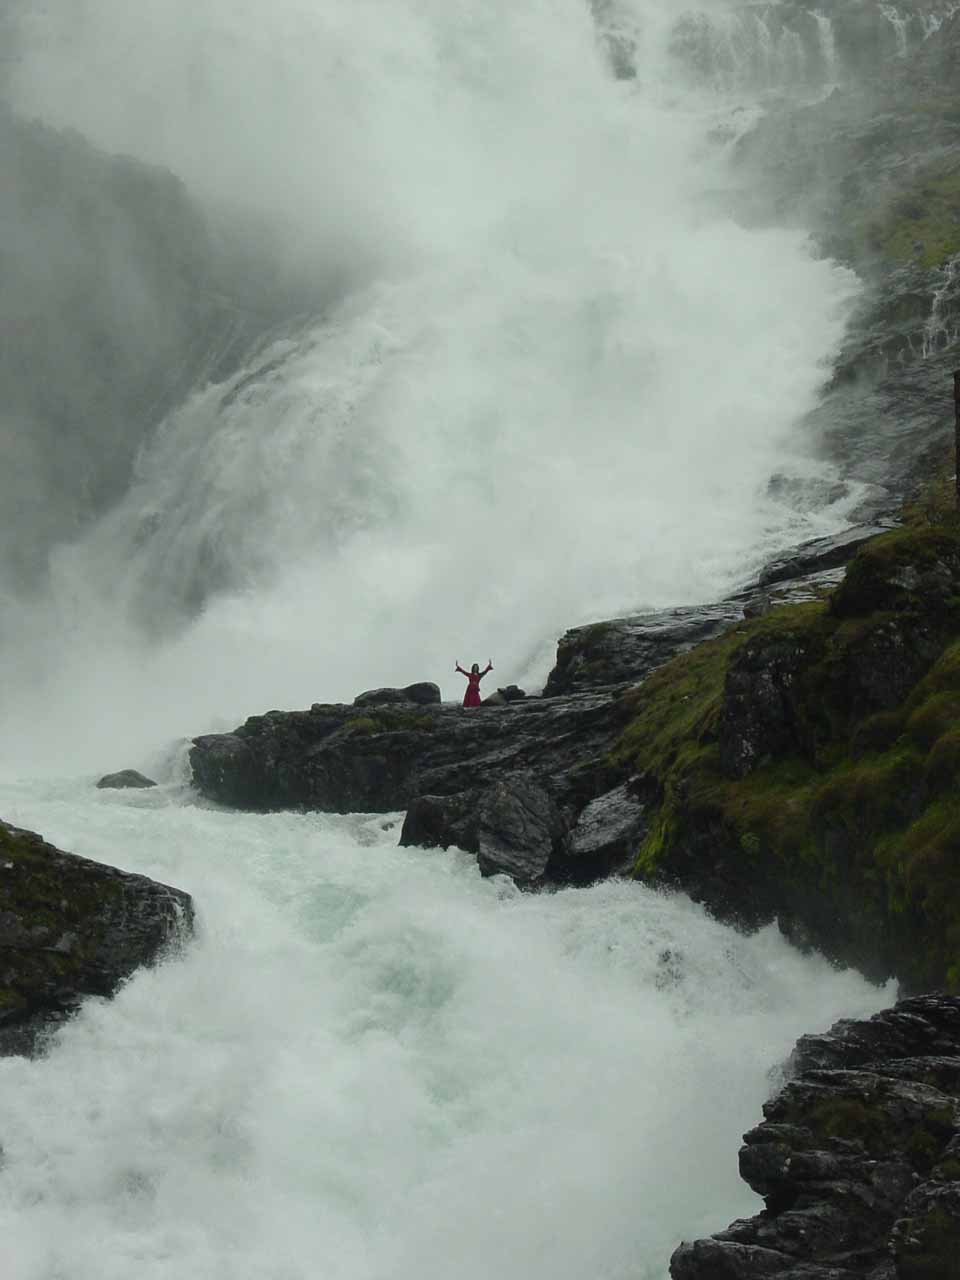 A closer look at a fairy of Kjosfossen in the middle of the falls doing her dance